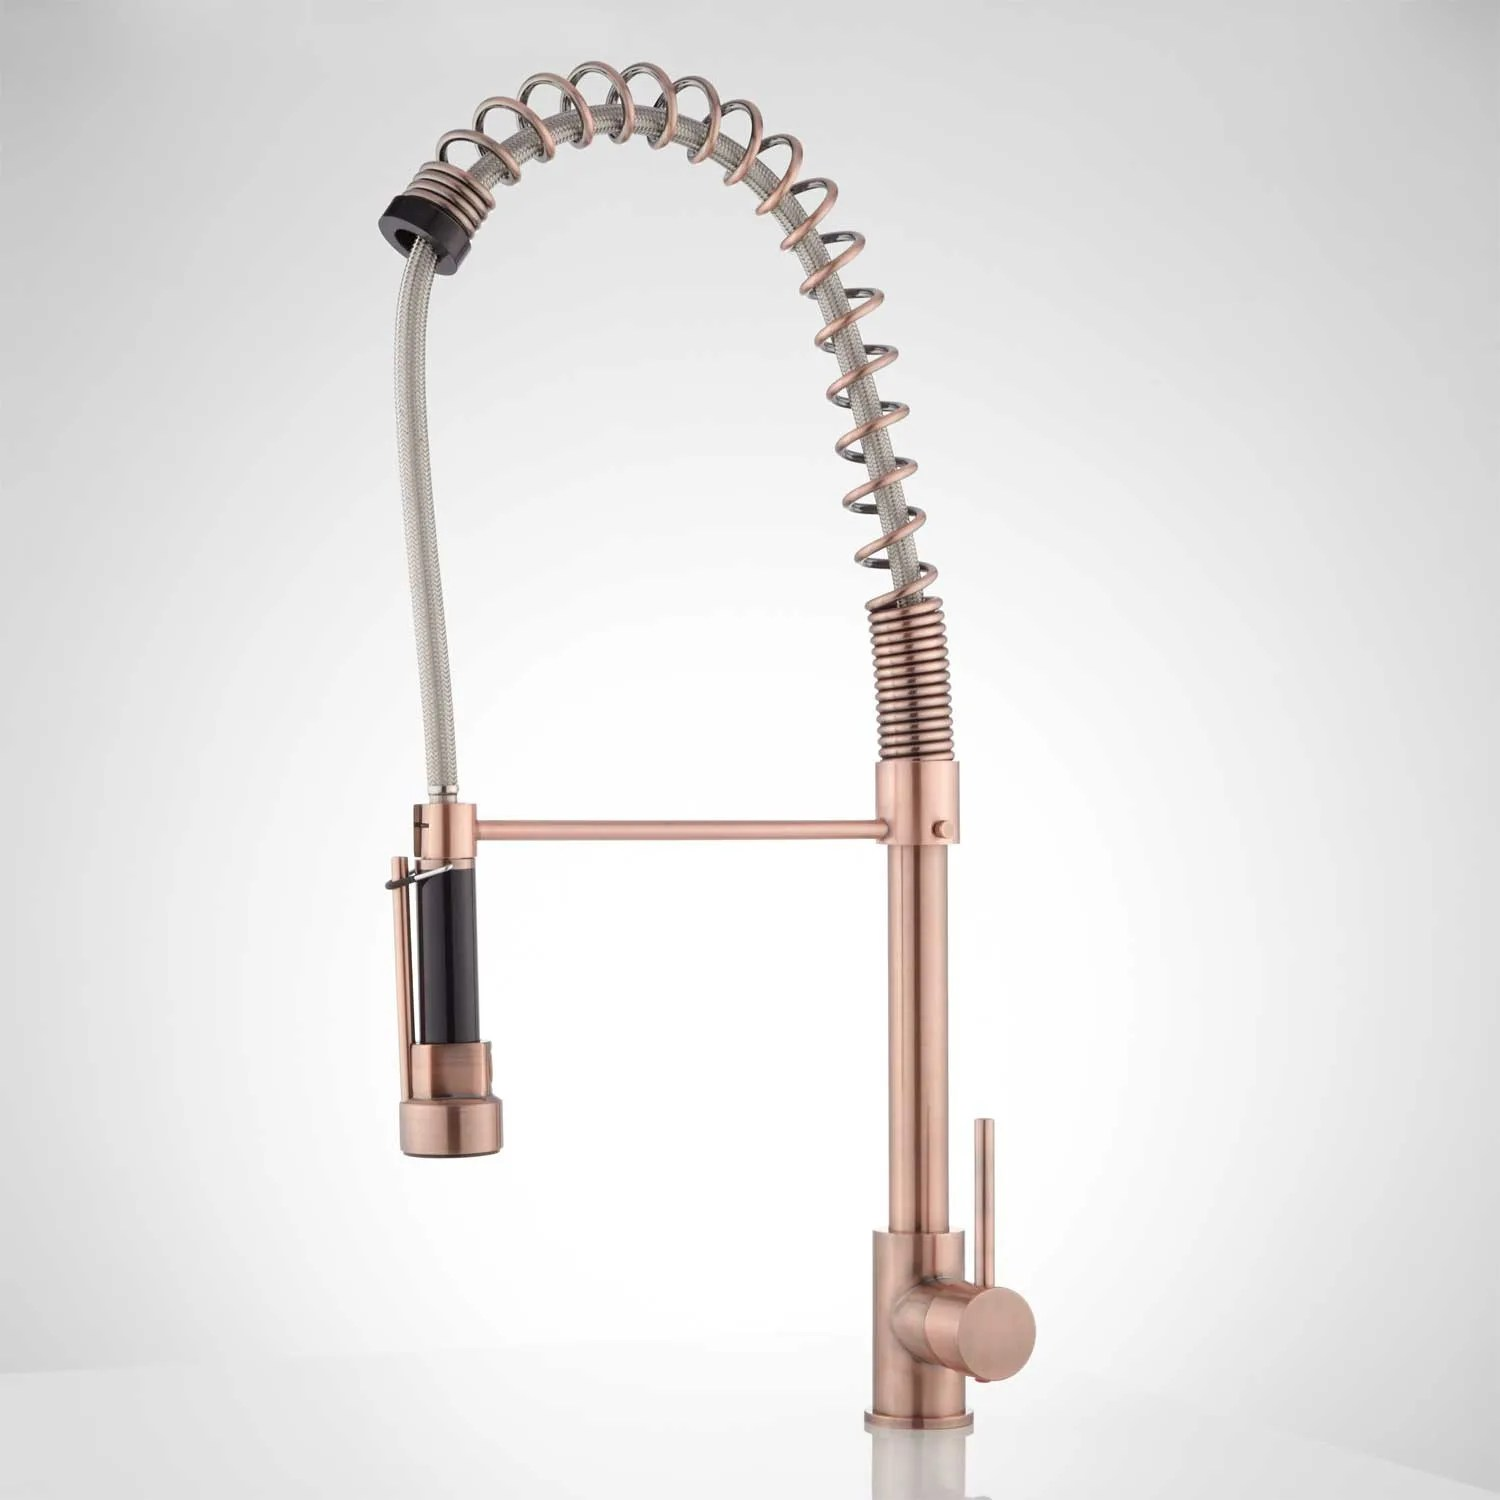 asaro kitchen faucet with pull down spring spout kitchen faucet pull down Antique Copper Side